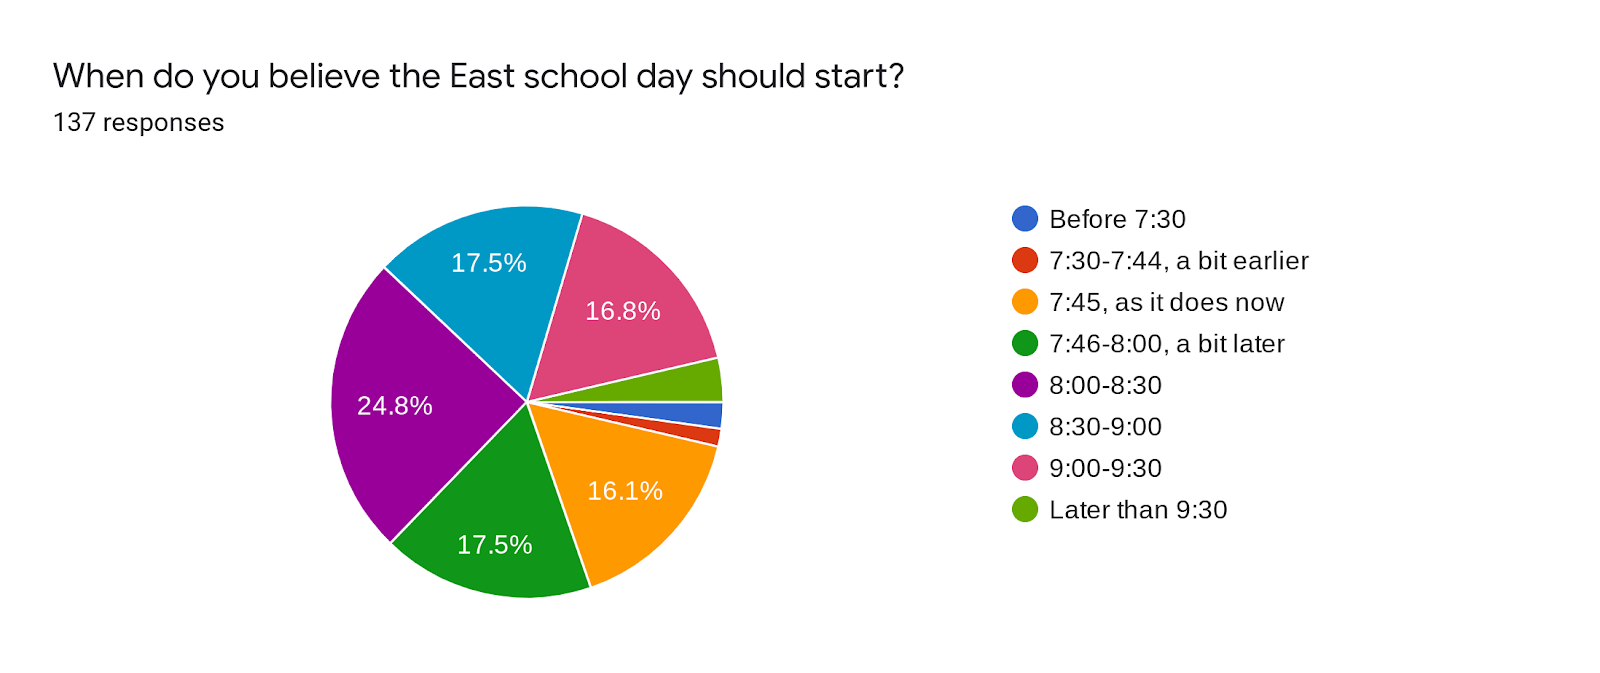 Forms response chart. Question title: When do you believe the East school day should start?. Number of responses: 137 responses.